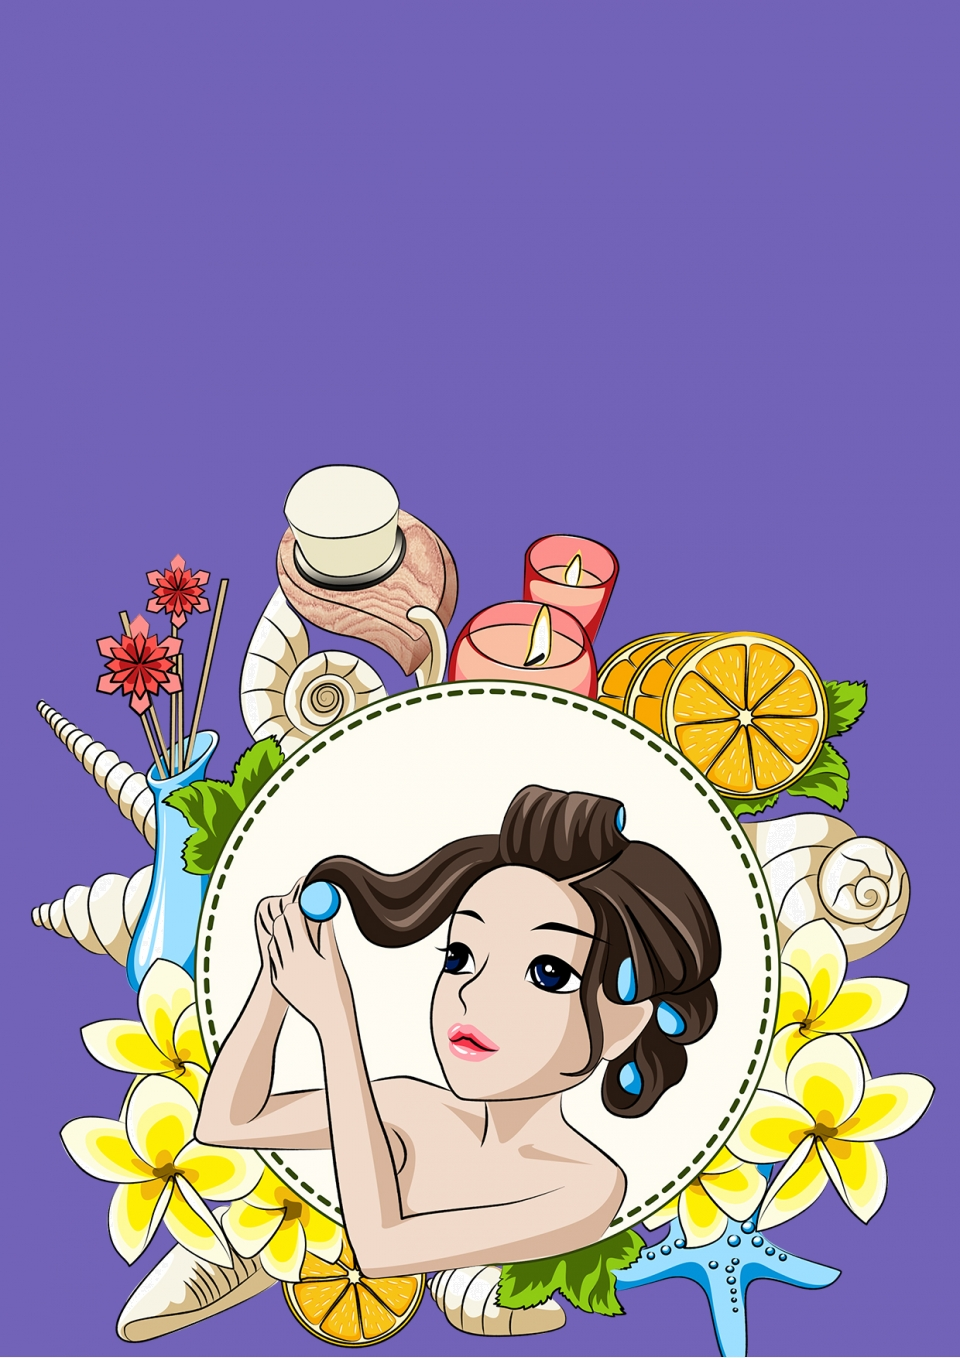 Beauty Salon Background Material Cartoon Purple Poster Background Image For Free Download